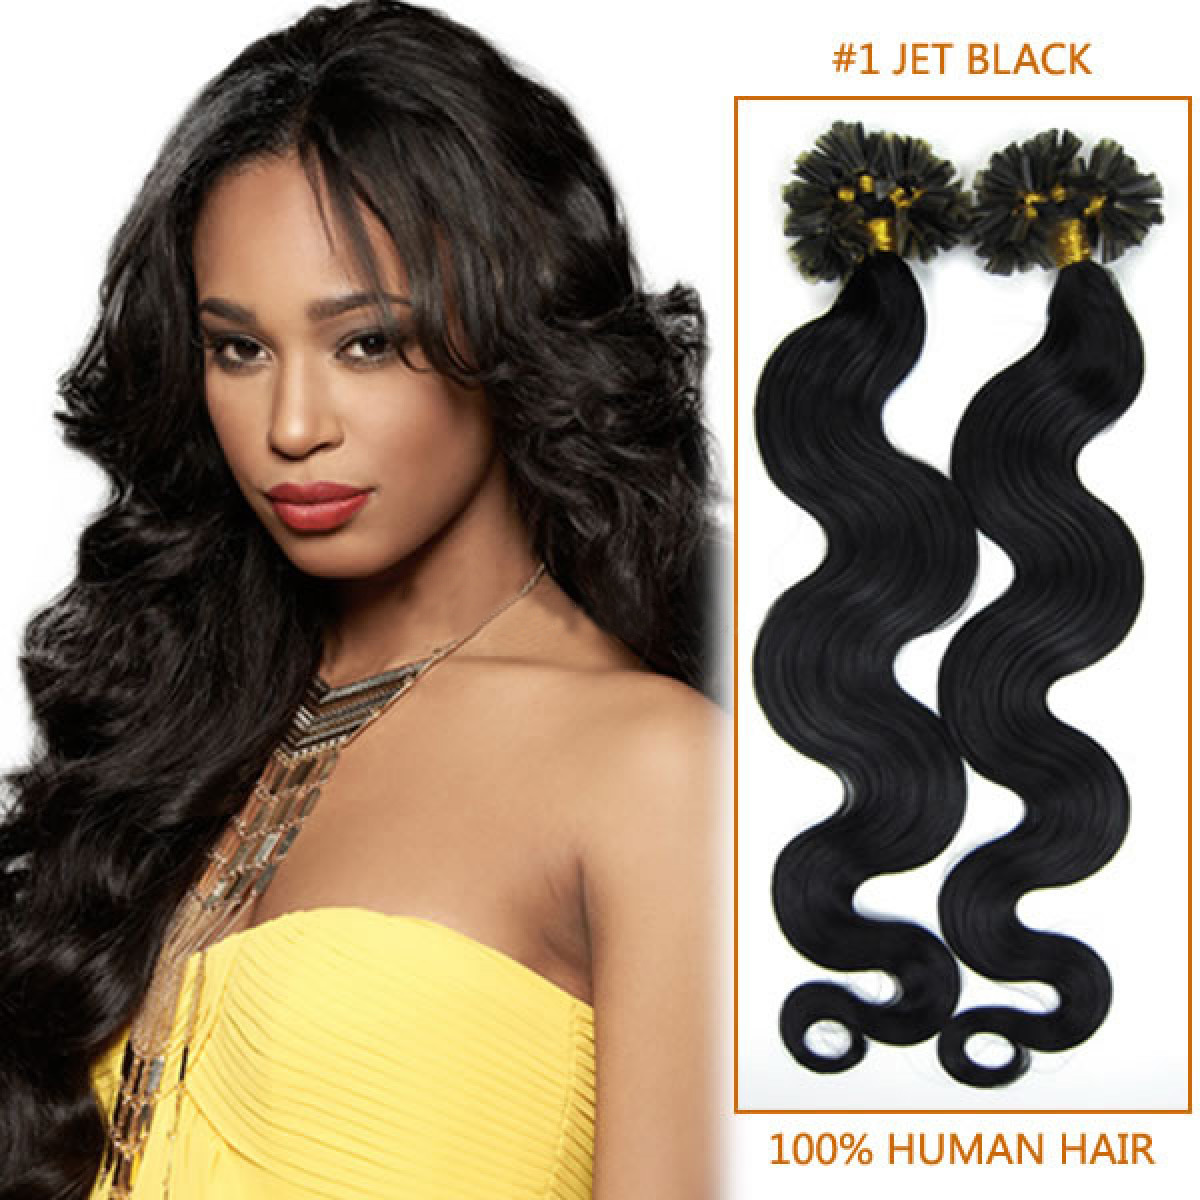 20 Inch #1 Jet Black Wavy Nail Tip Human Hair Extensions 100S ...